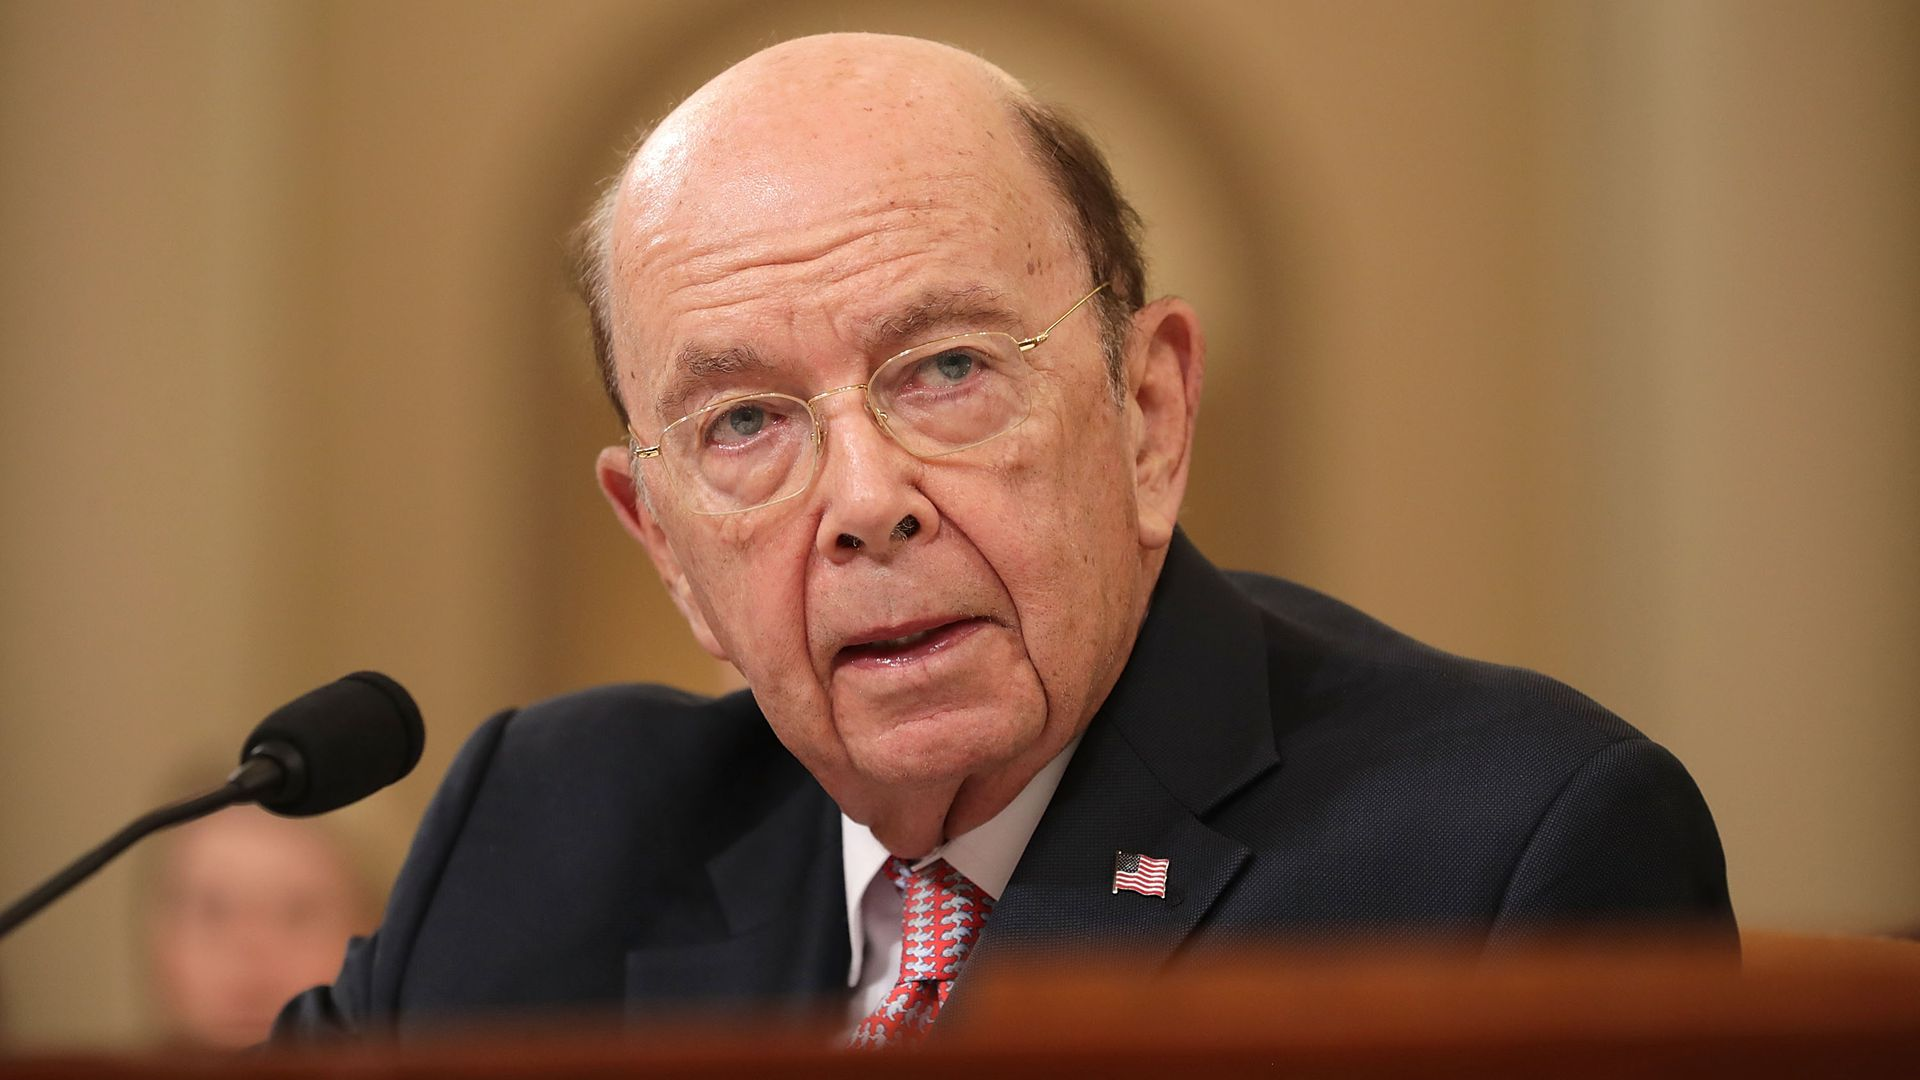 U.S. Commerce Secretary Wilbur Ross testifies before the House Ways and Means Committee in the Longworth House Office Building on Capitol Hill March 22, 2018 in Washington, DC.